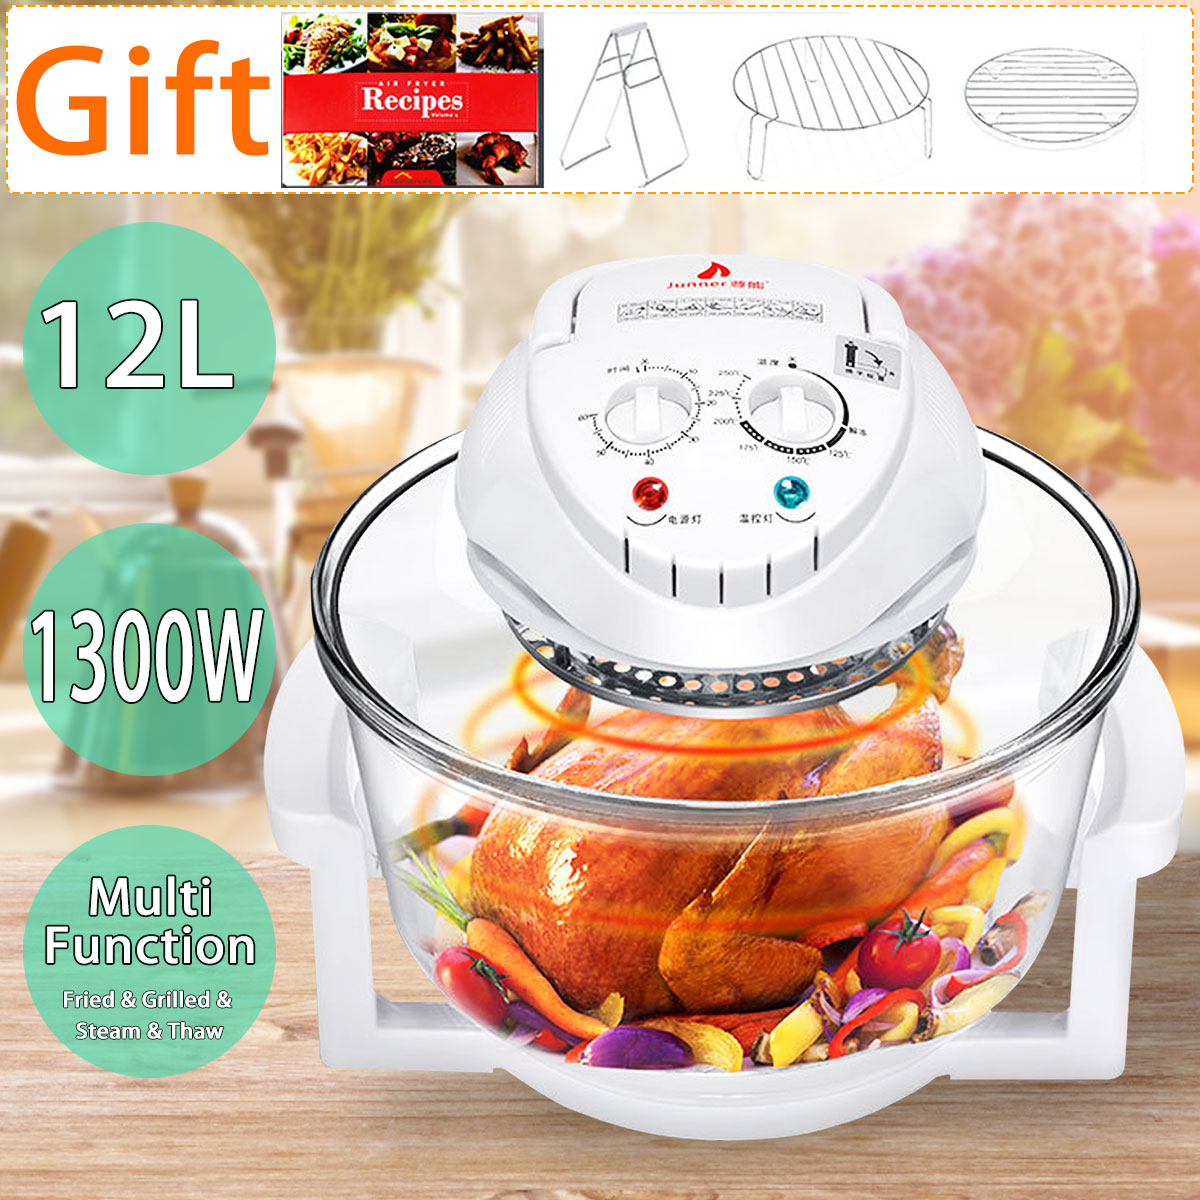 1300W 12L 110V-240V Conventional Infrared Oven Roaster Air Fryer Turbo Electric Cooker Multifunction BBQ Bake Cook With Recipe